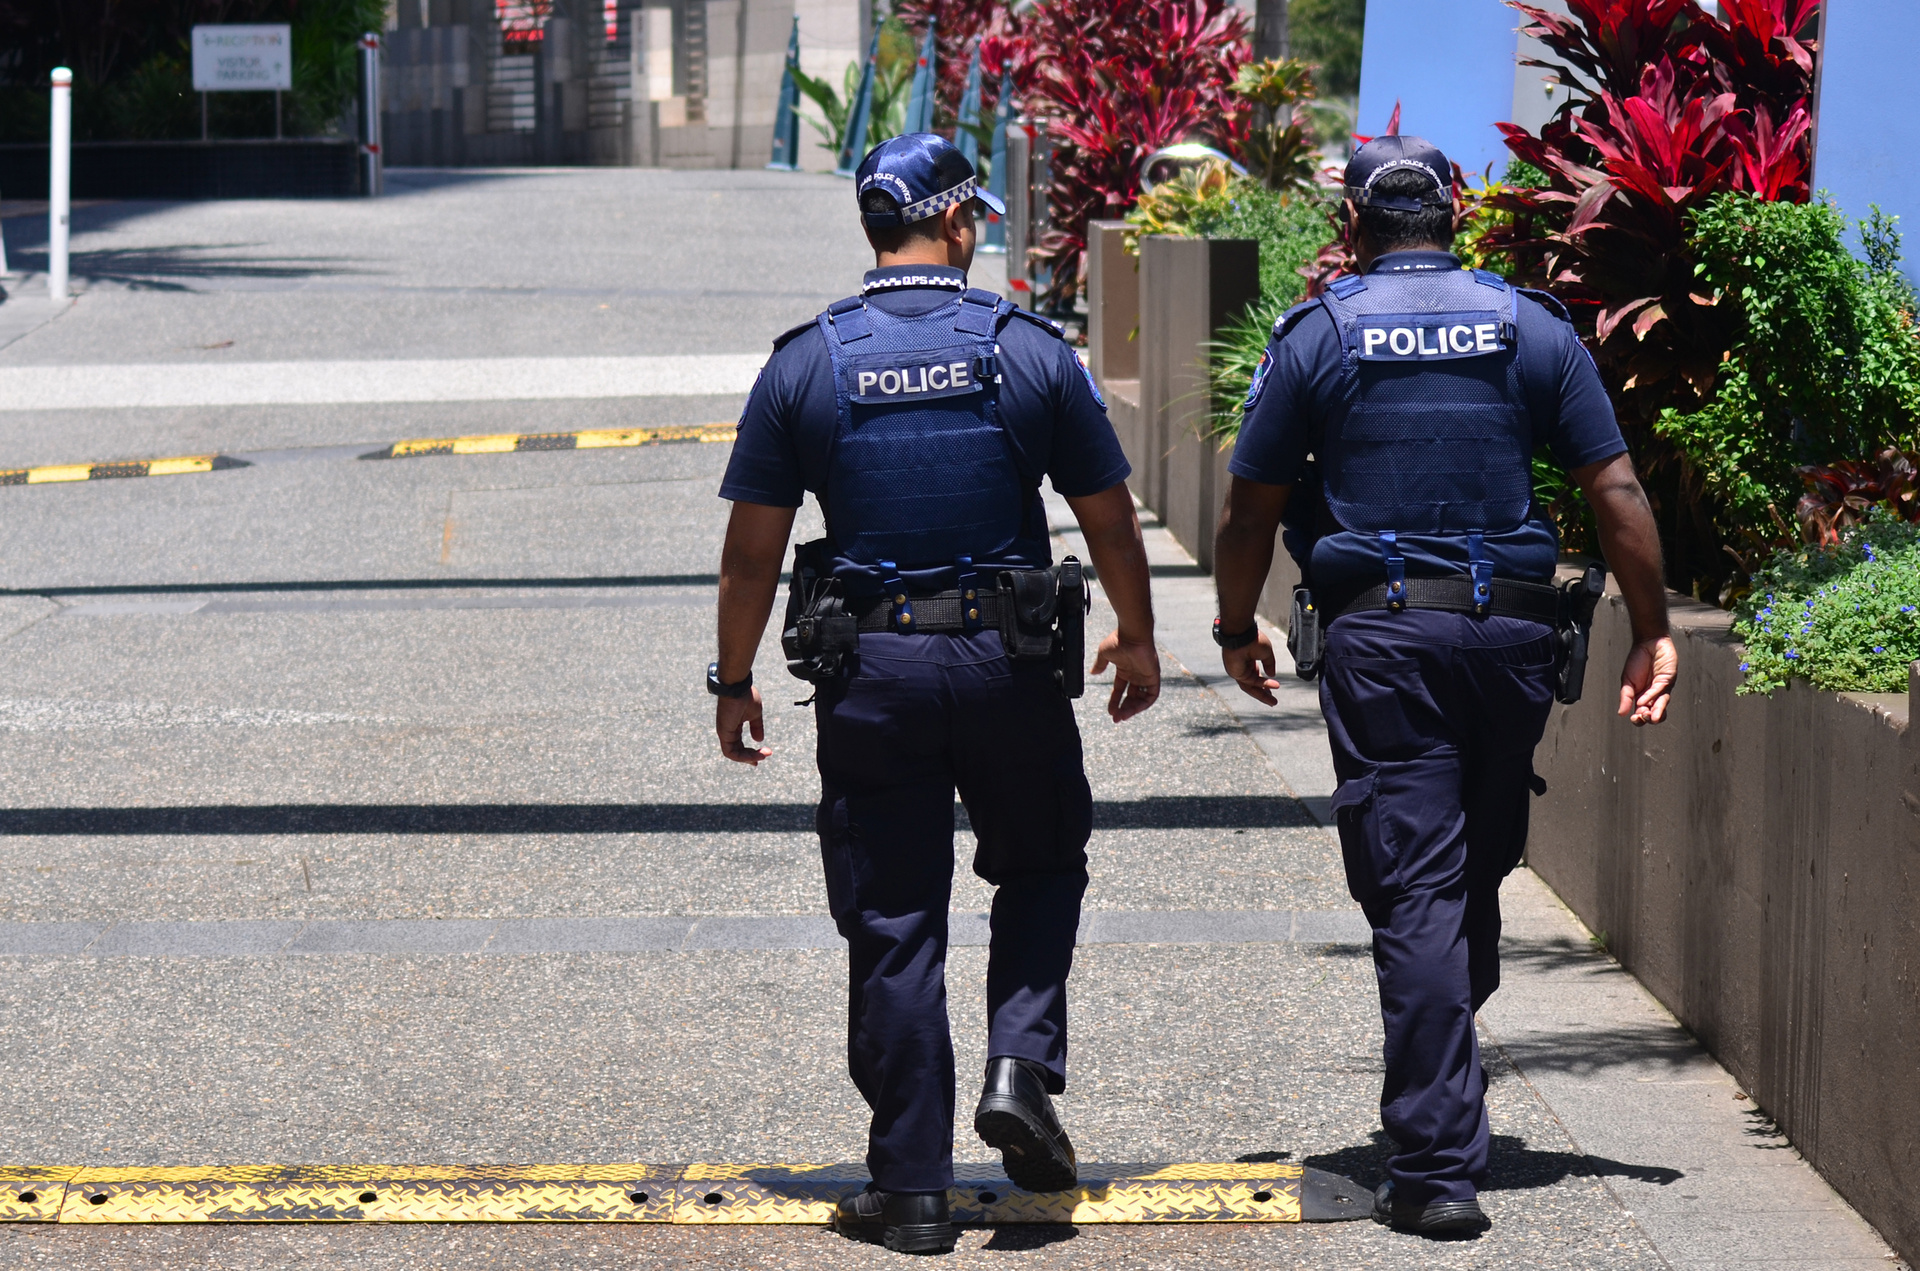 Australian police officer wins right to four-day work week